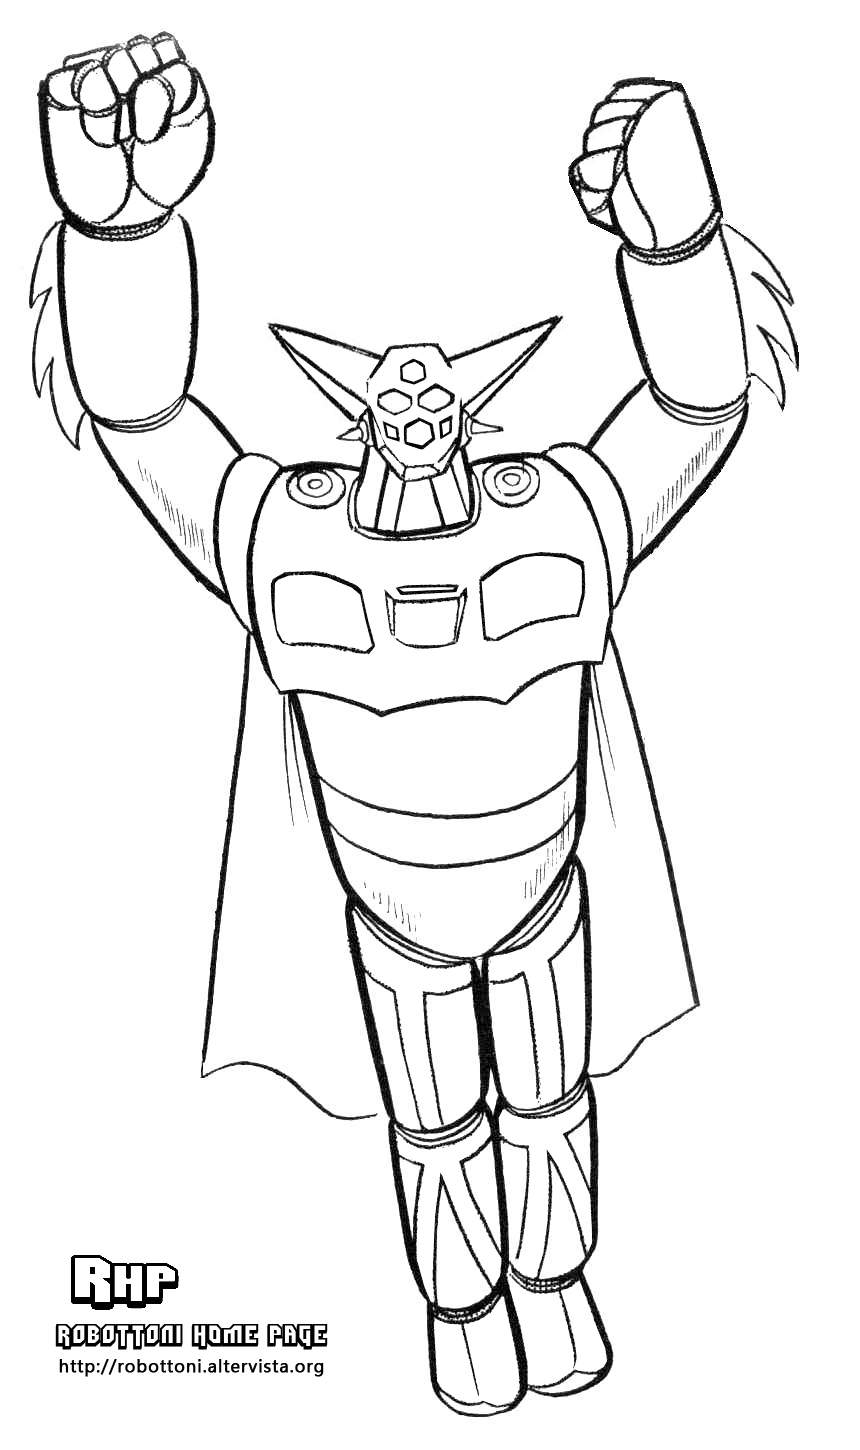 mazinger z coloring pages - photo#21